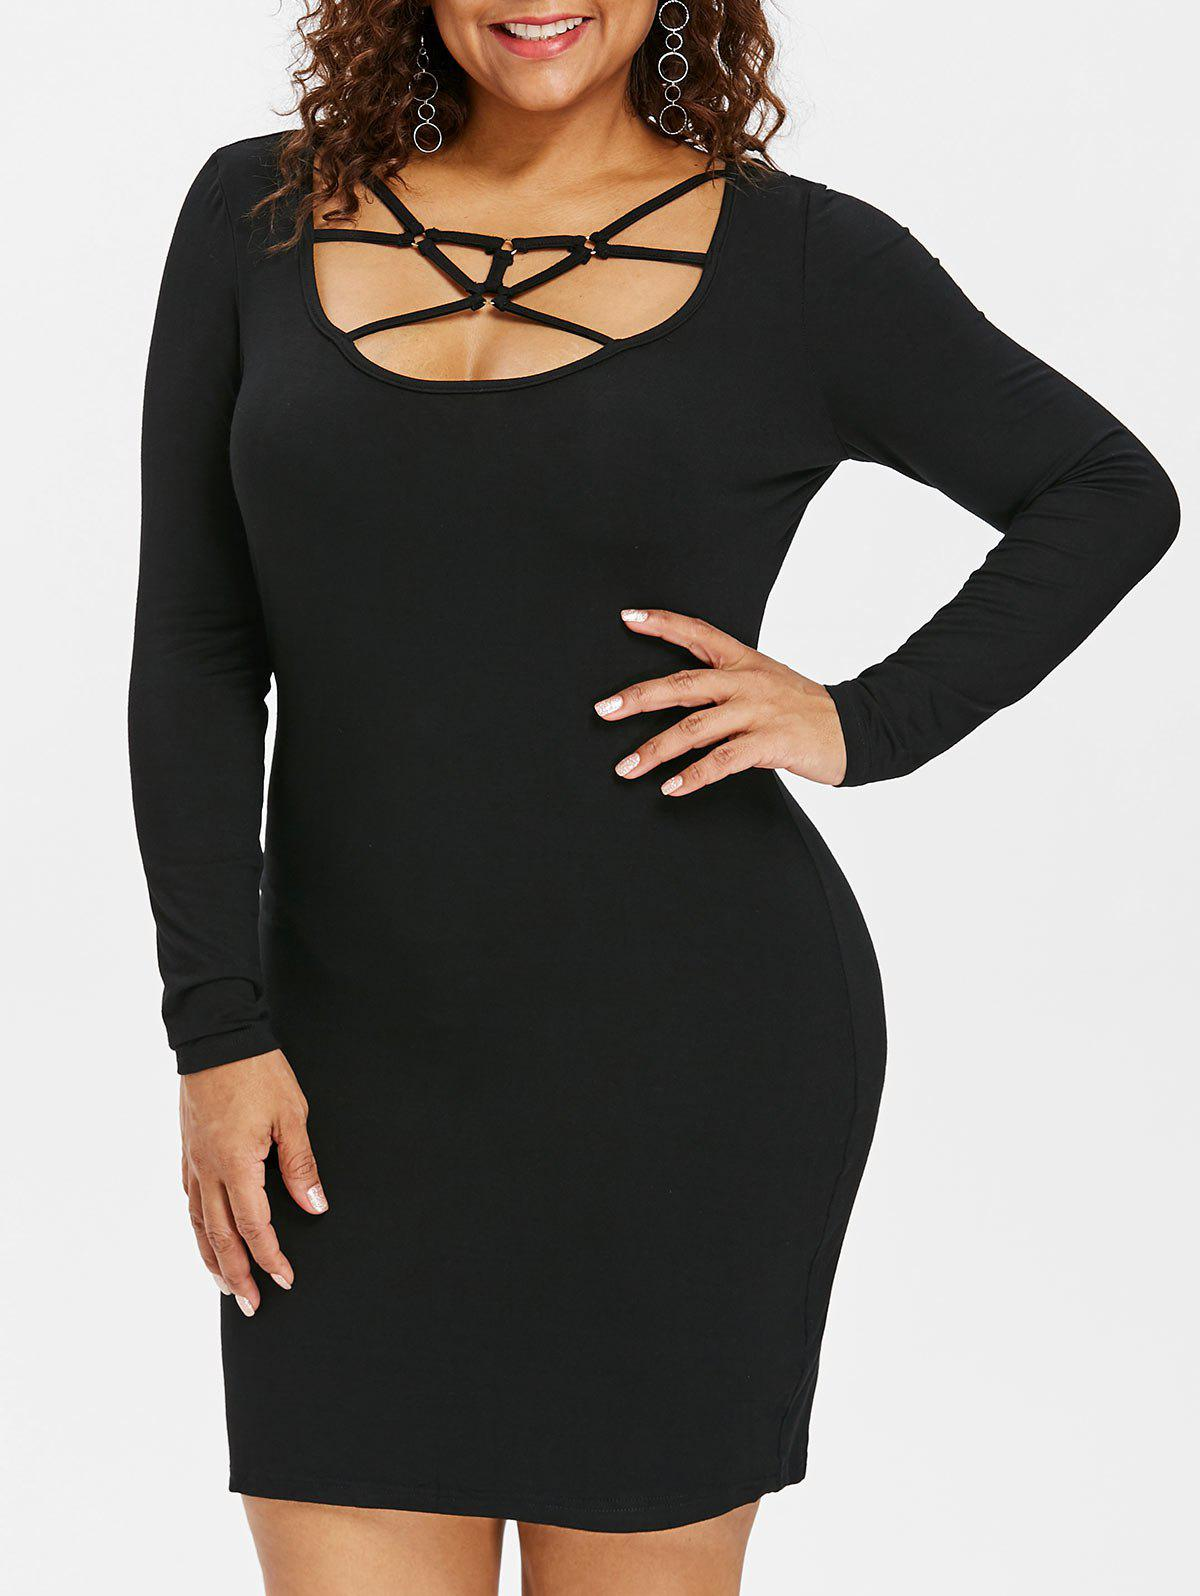 Trendy Plus Size Caged Cut Out Bodycon Dress